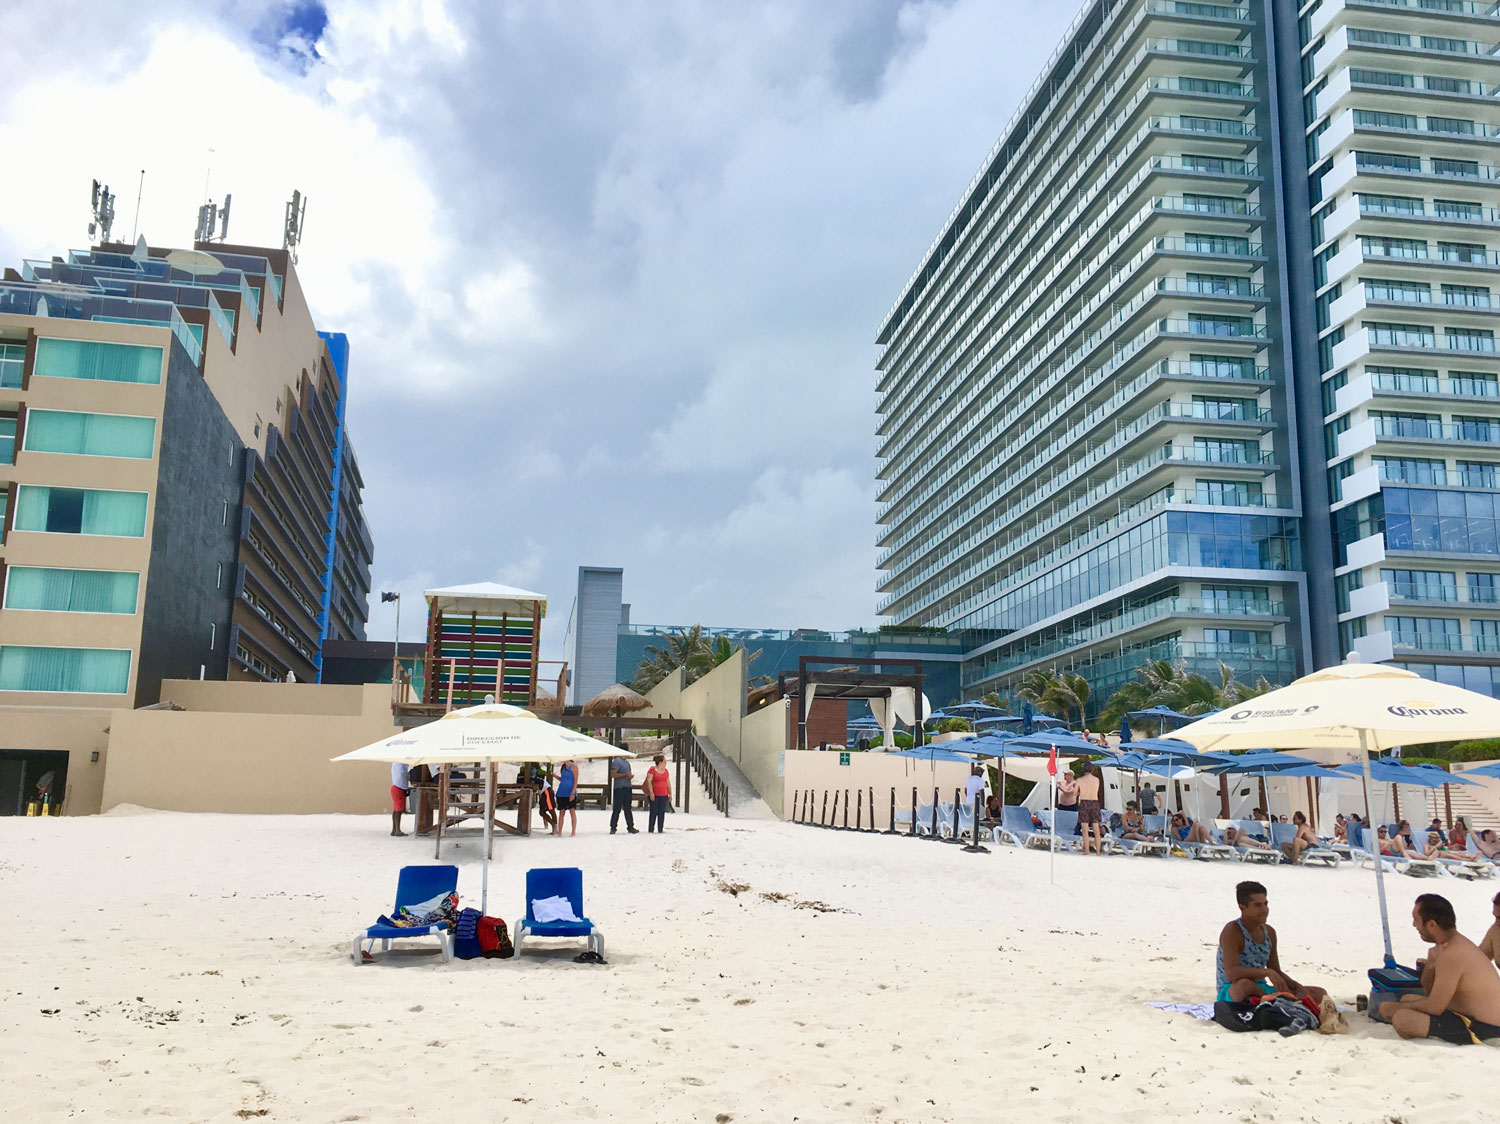 Our beach chairs, lifeguards and the Secrets hotel on the right.